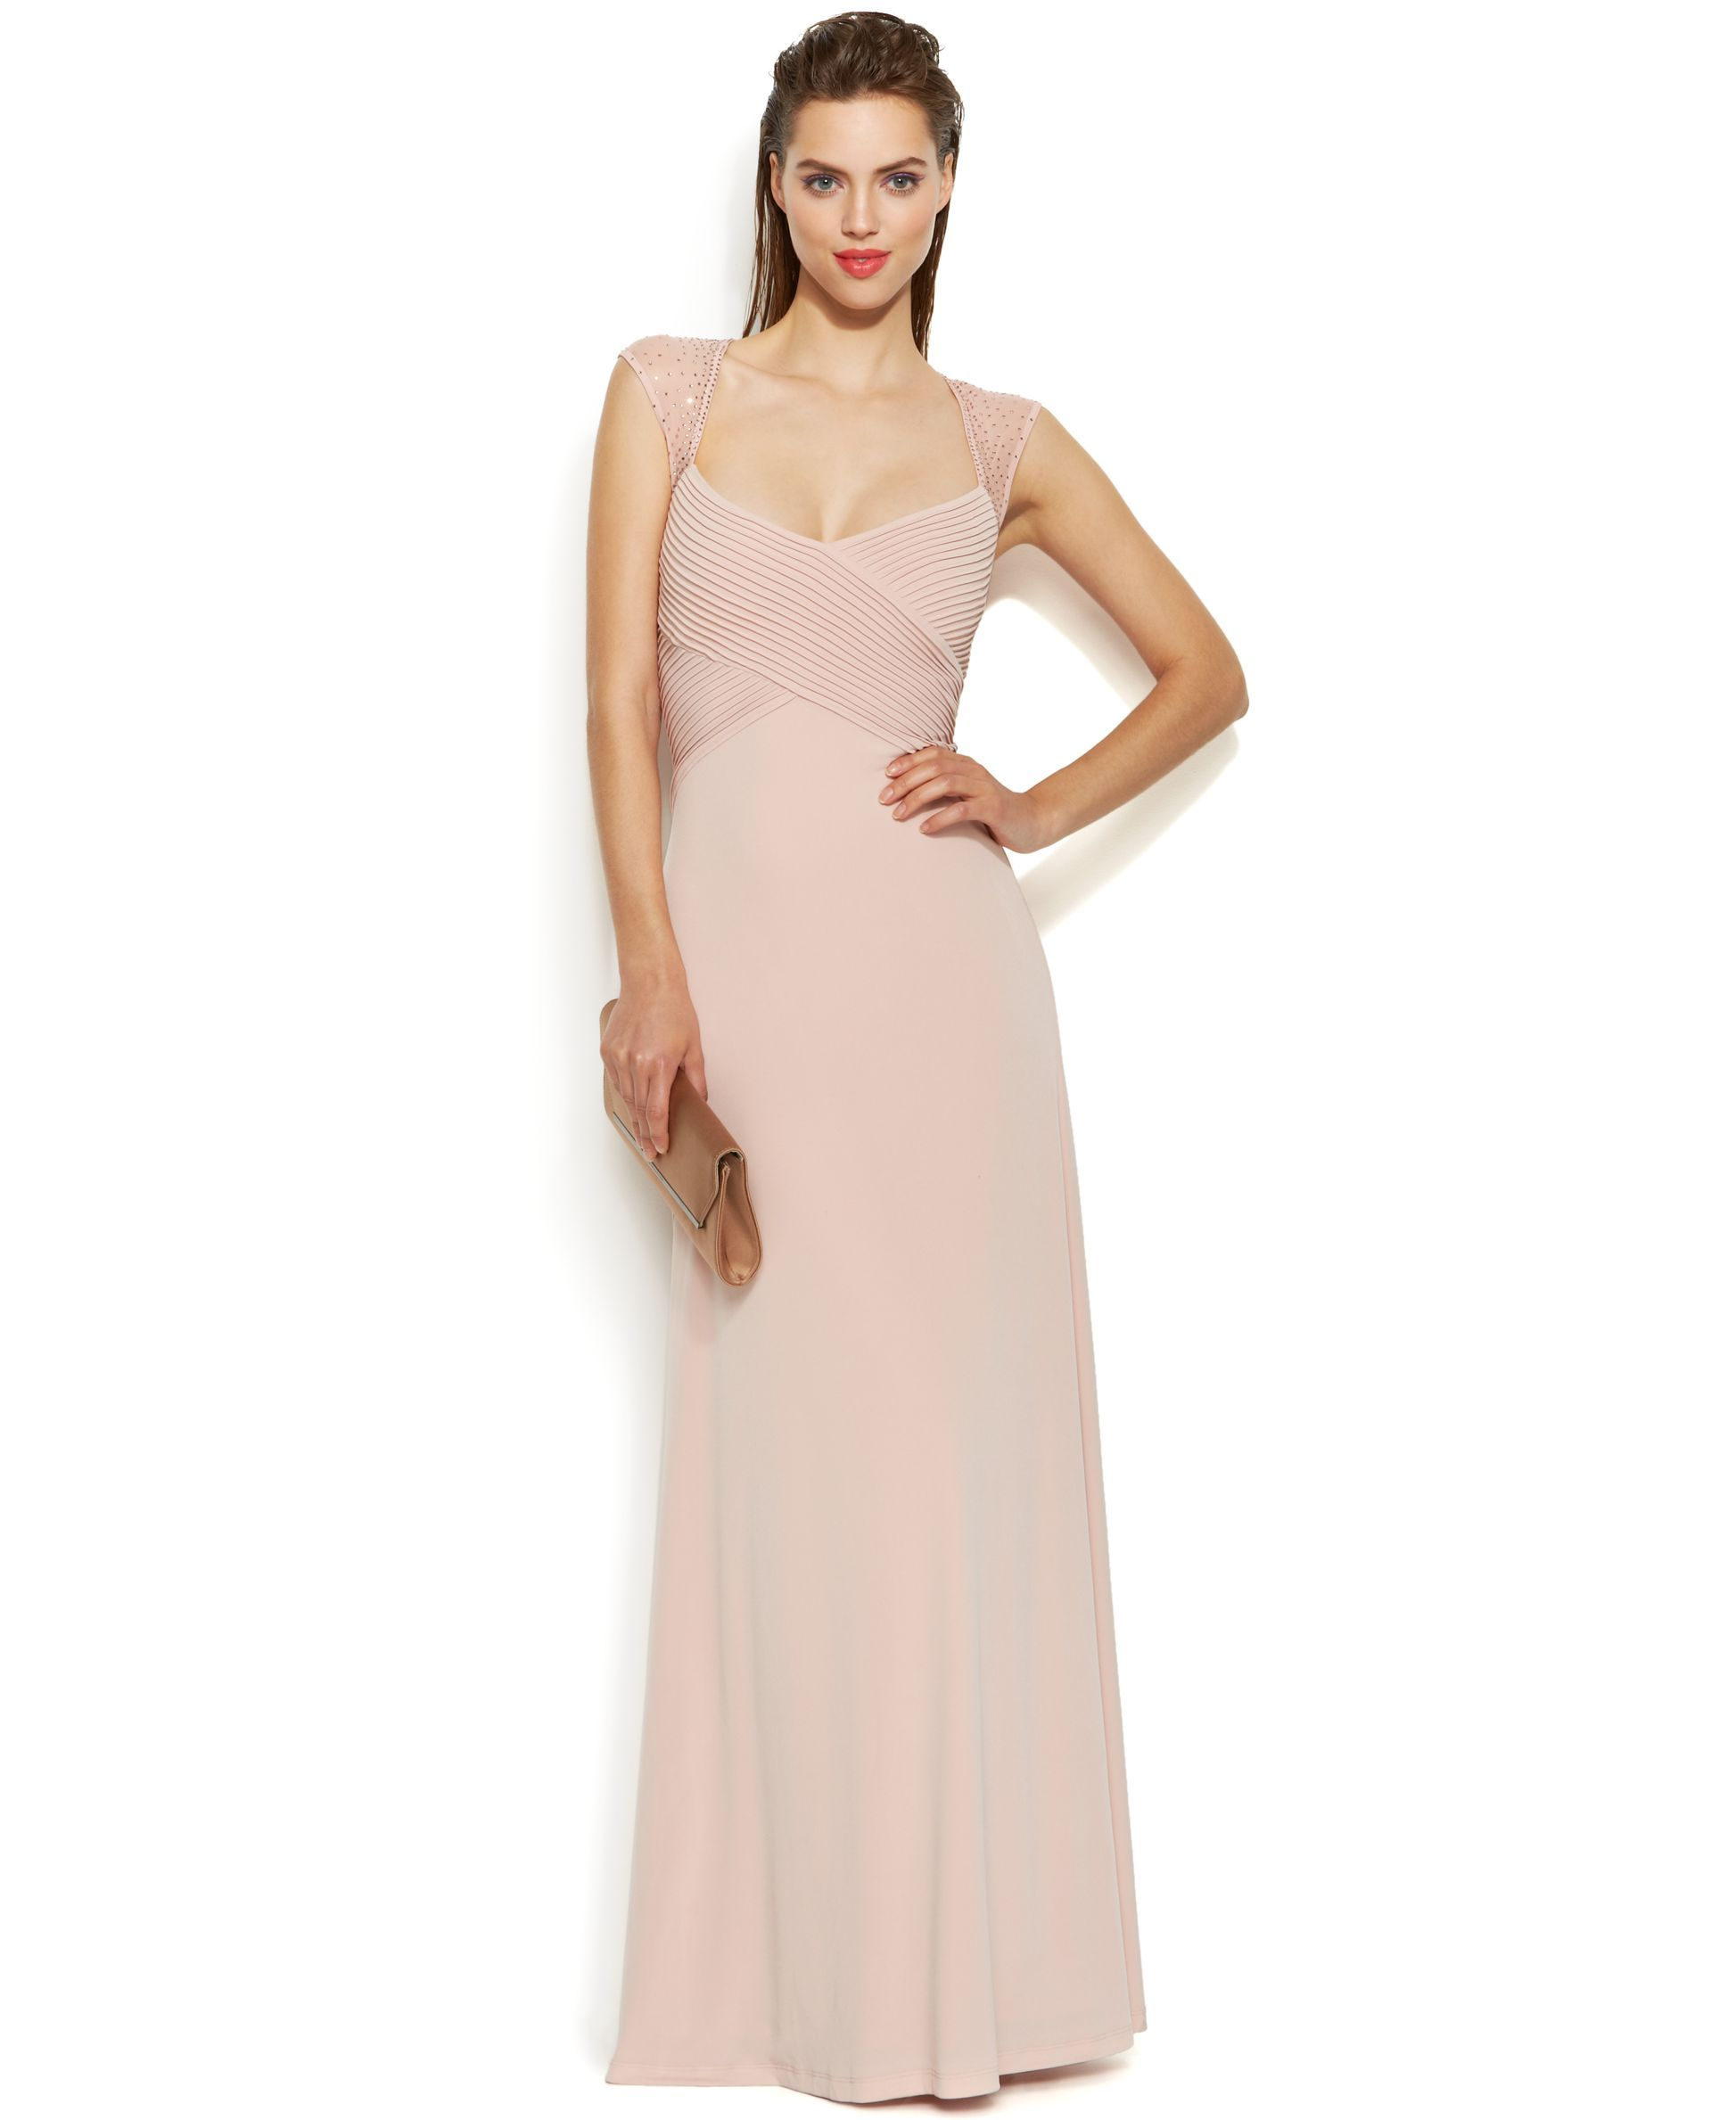 e14fb13e716 Calvin Klein Embellished Sleeve Illusion Crisscross Gown Pink Gowns